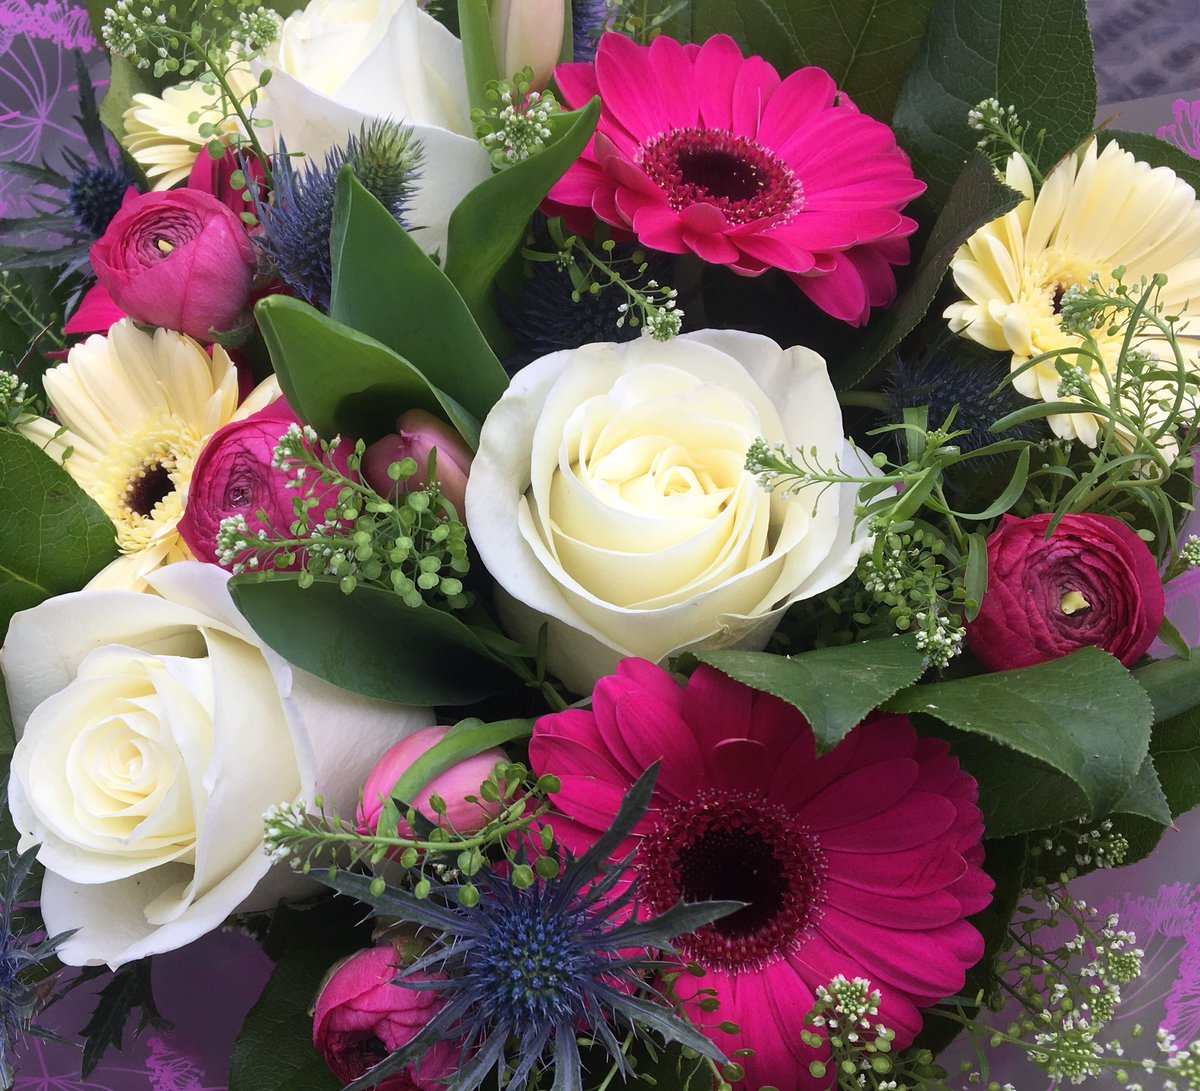 Pick A Posy On Twitter Good Morning Everyone Happy Wednesday